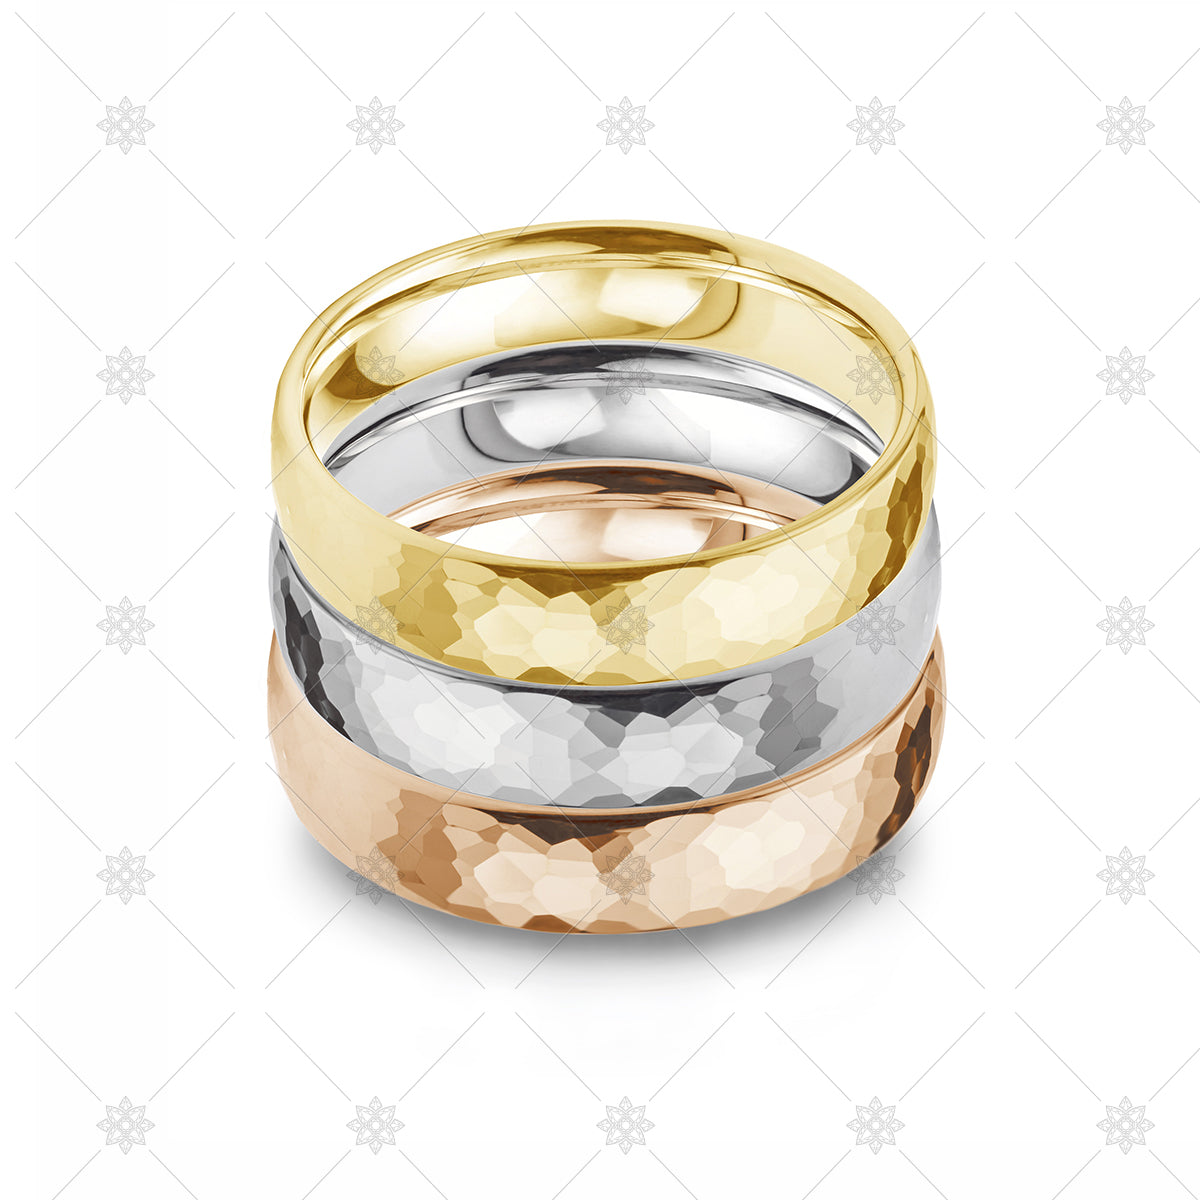 Wedding ring stack stock image